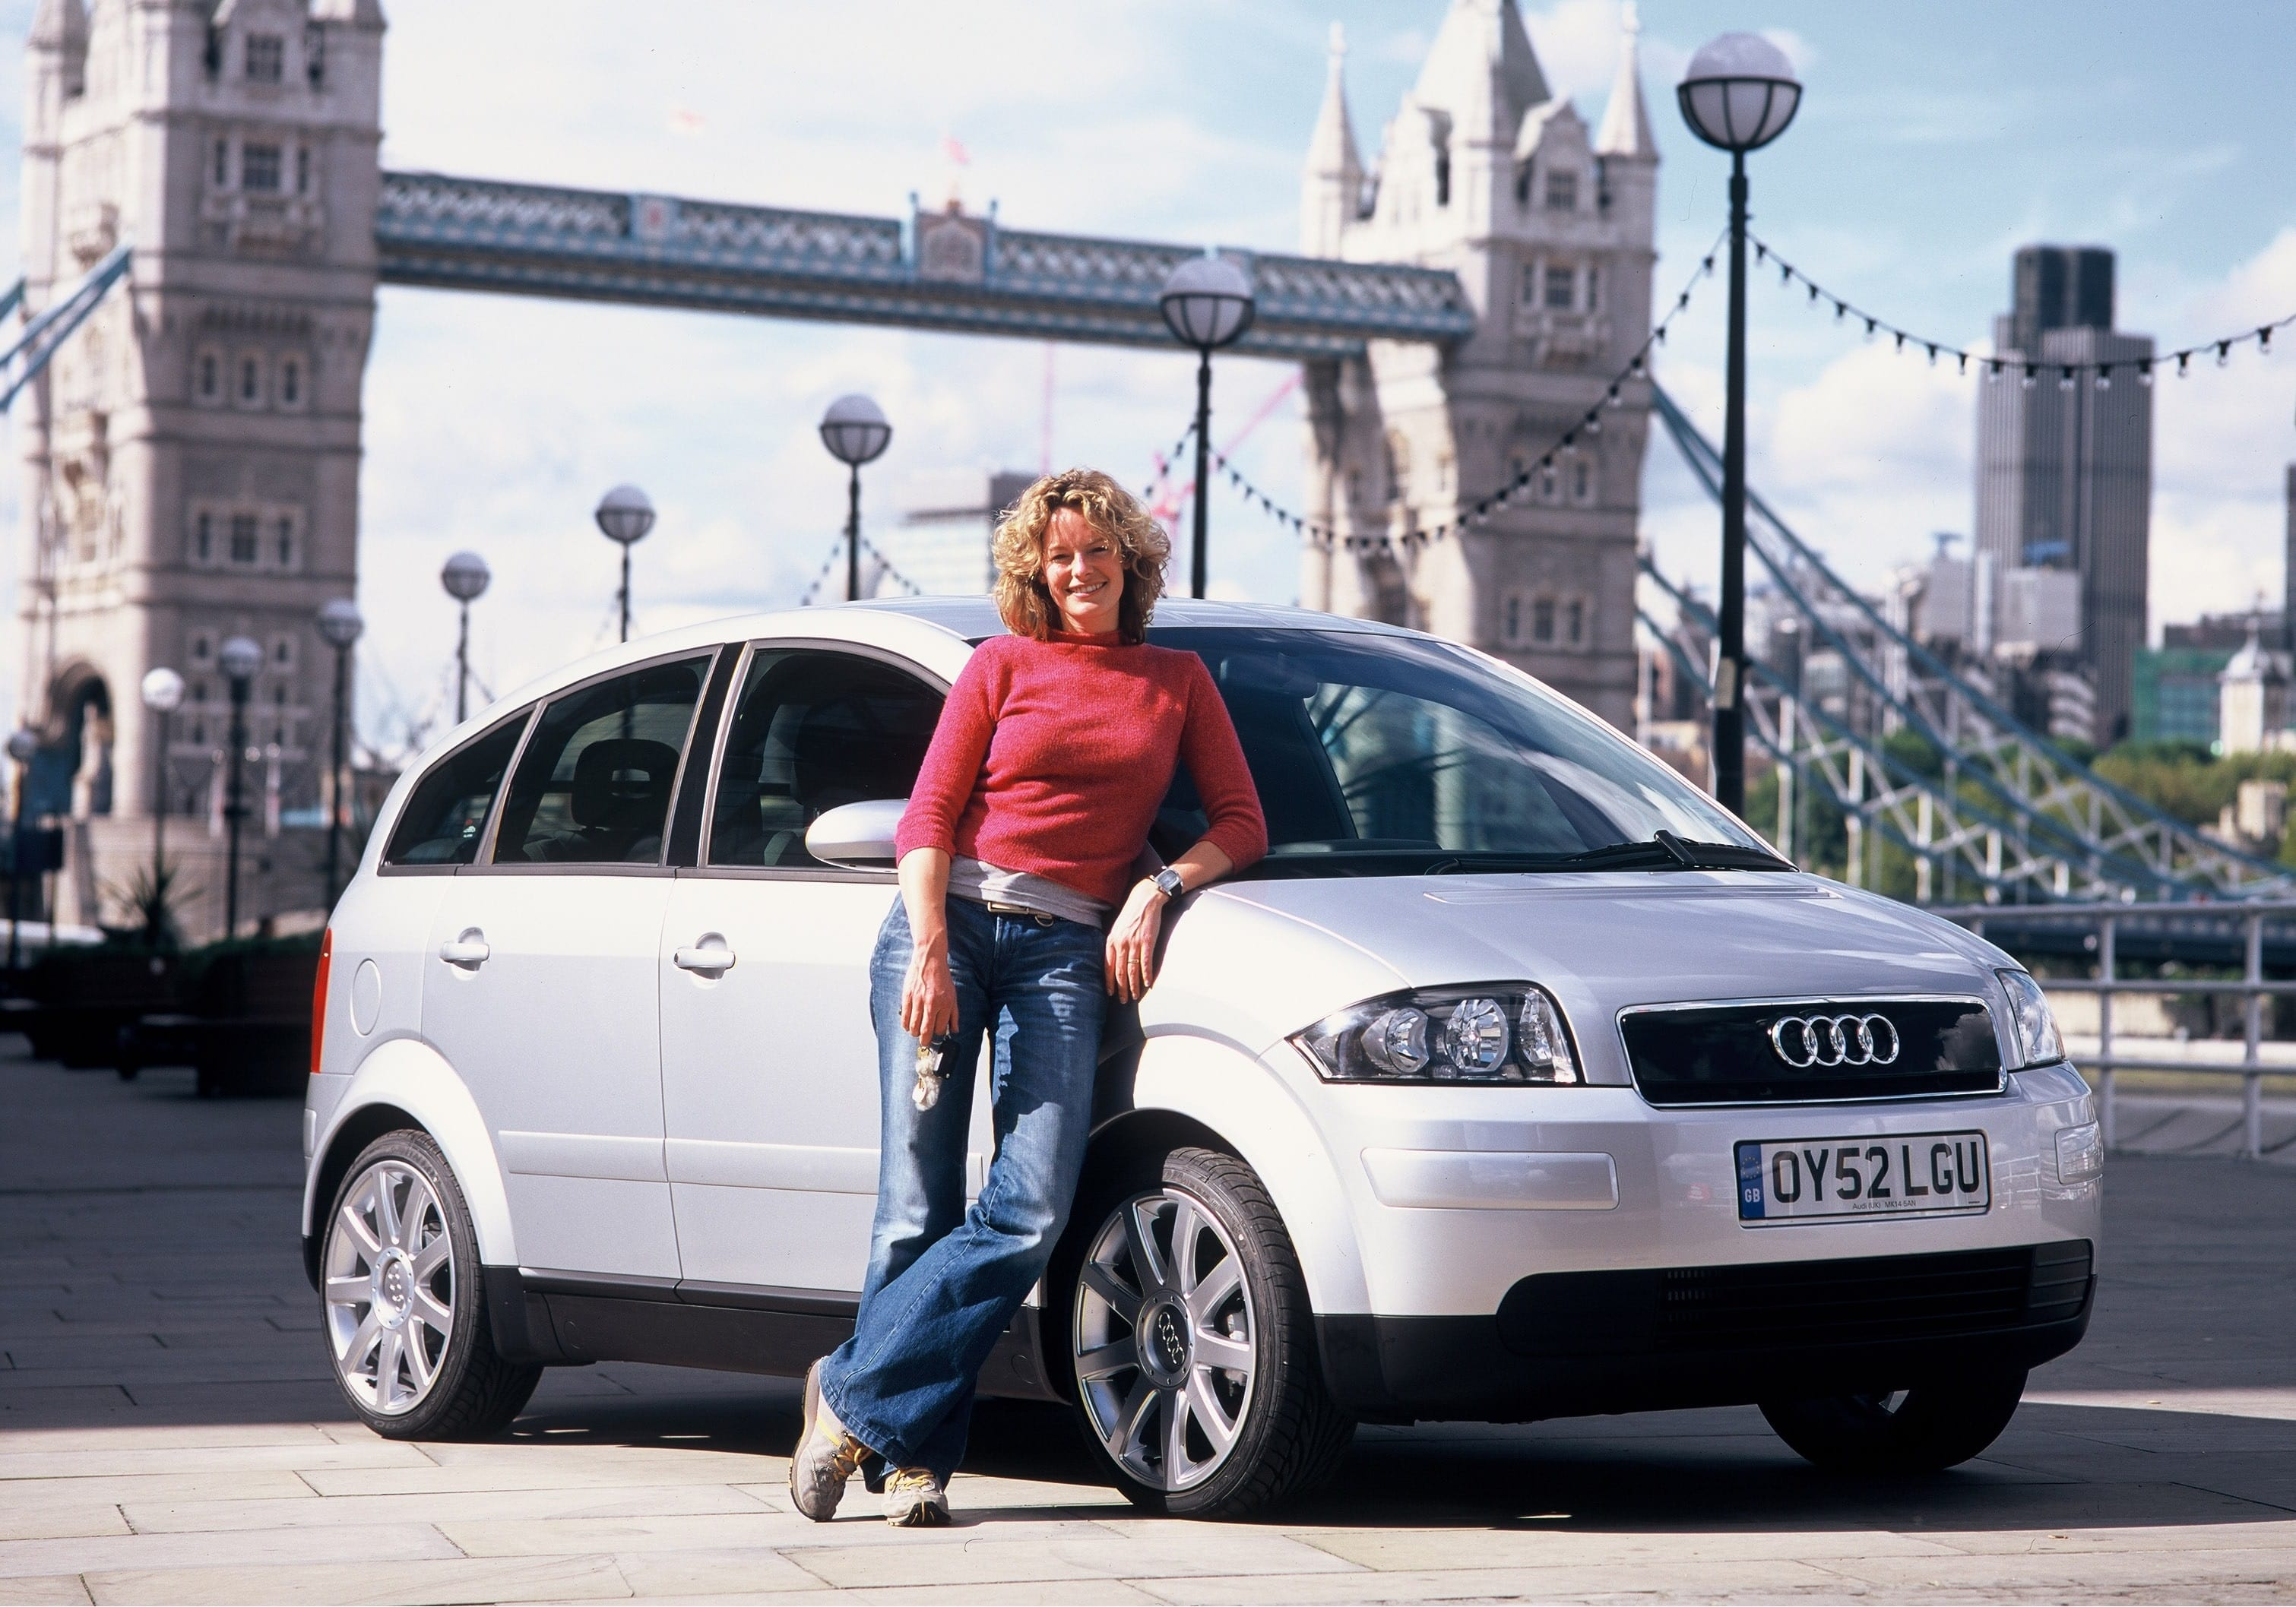 audi a2, audi, a2, cars, eco, environmental car, eco friendly, economical, aluminium, german, kate humble, motoring, automotive, cars, car, not2grand